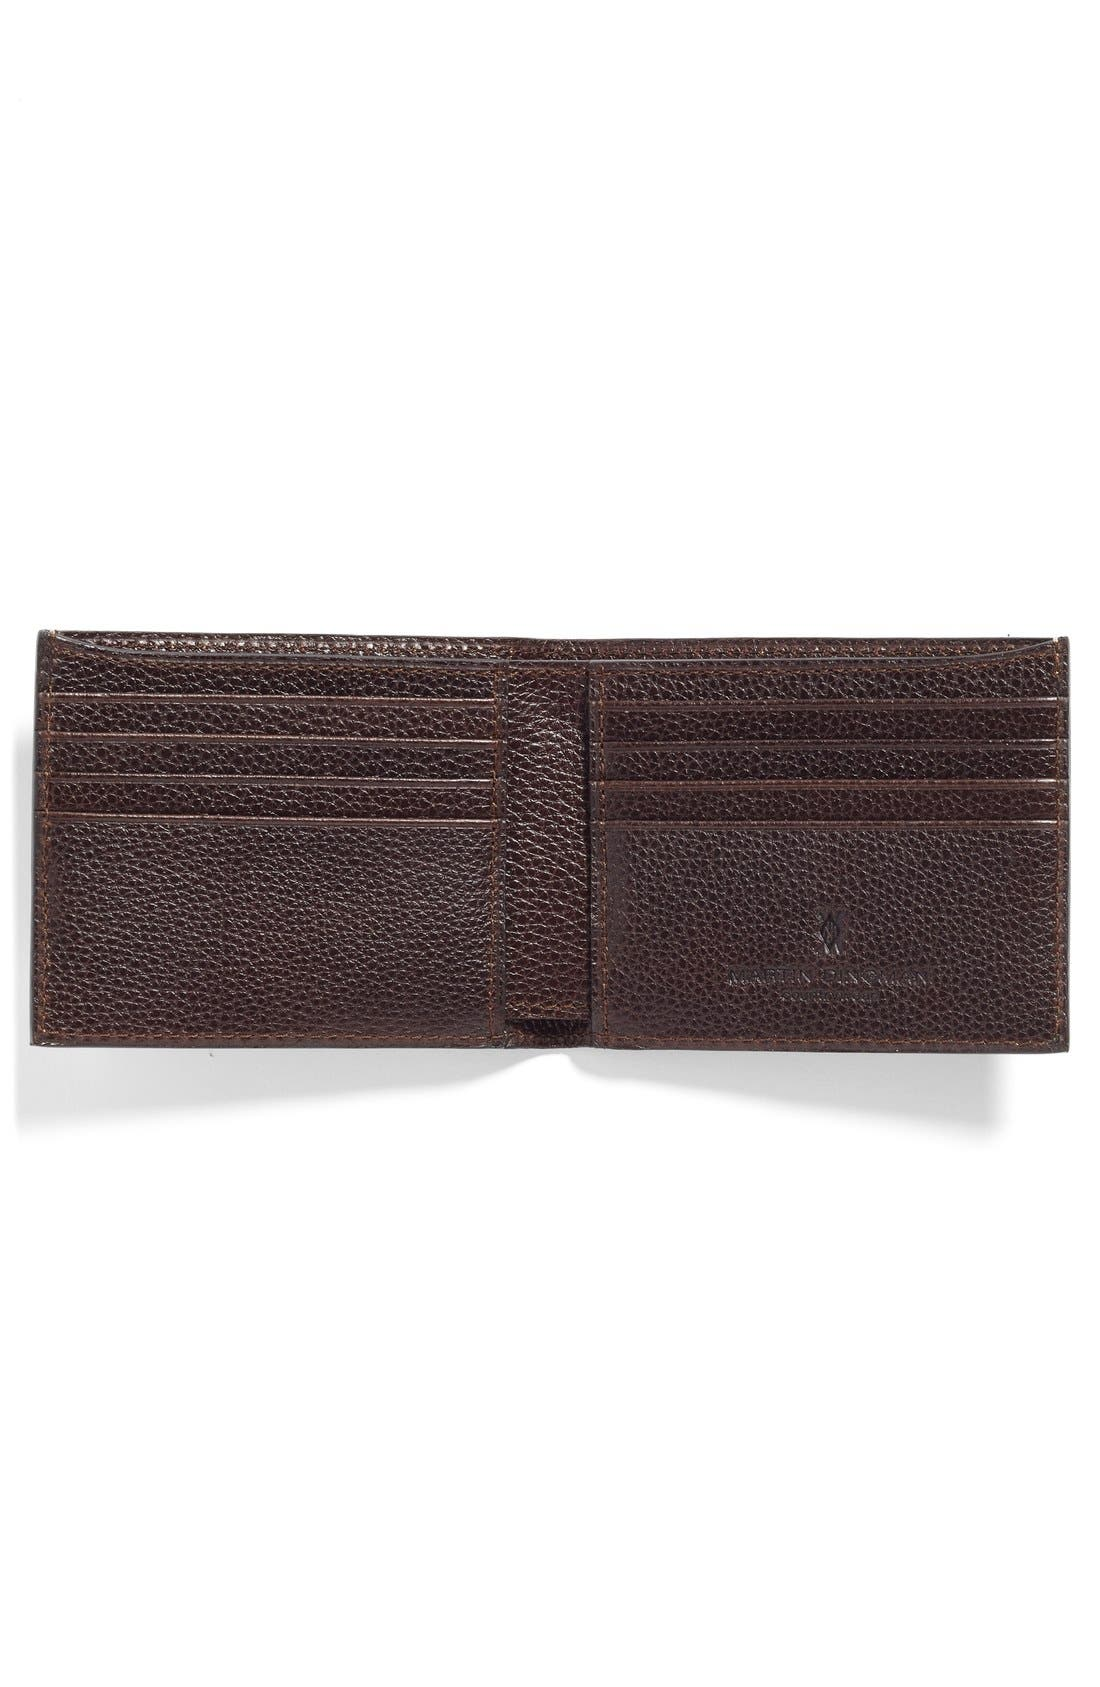 Water Buffalo Leather Wallet,                             Alternate thumbnail 2, color,                             203